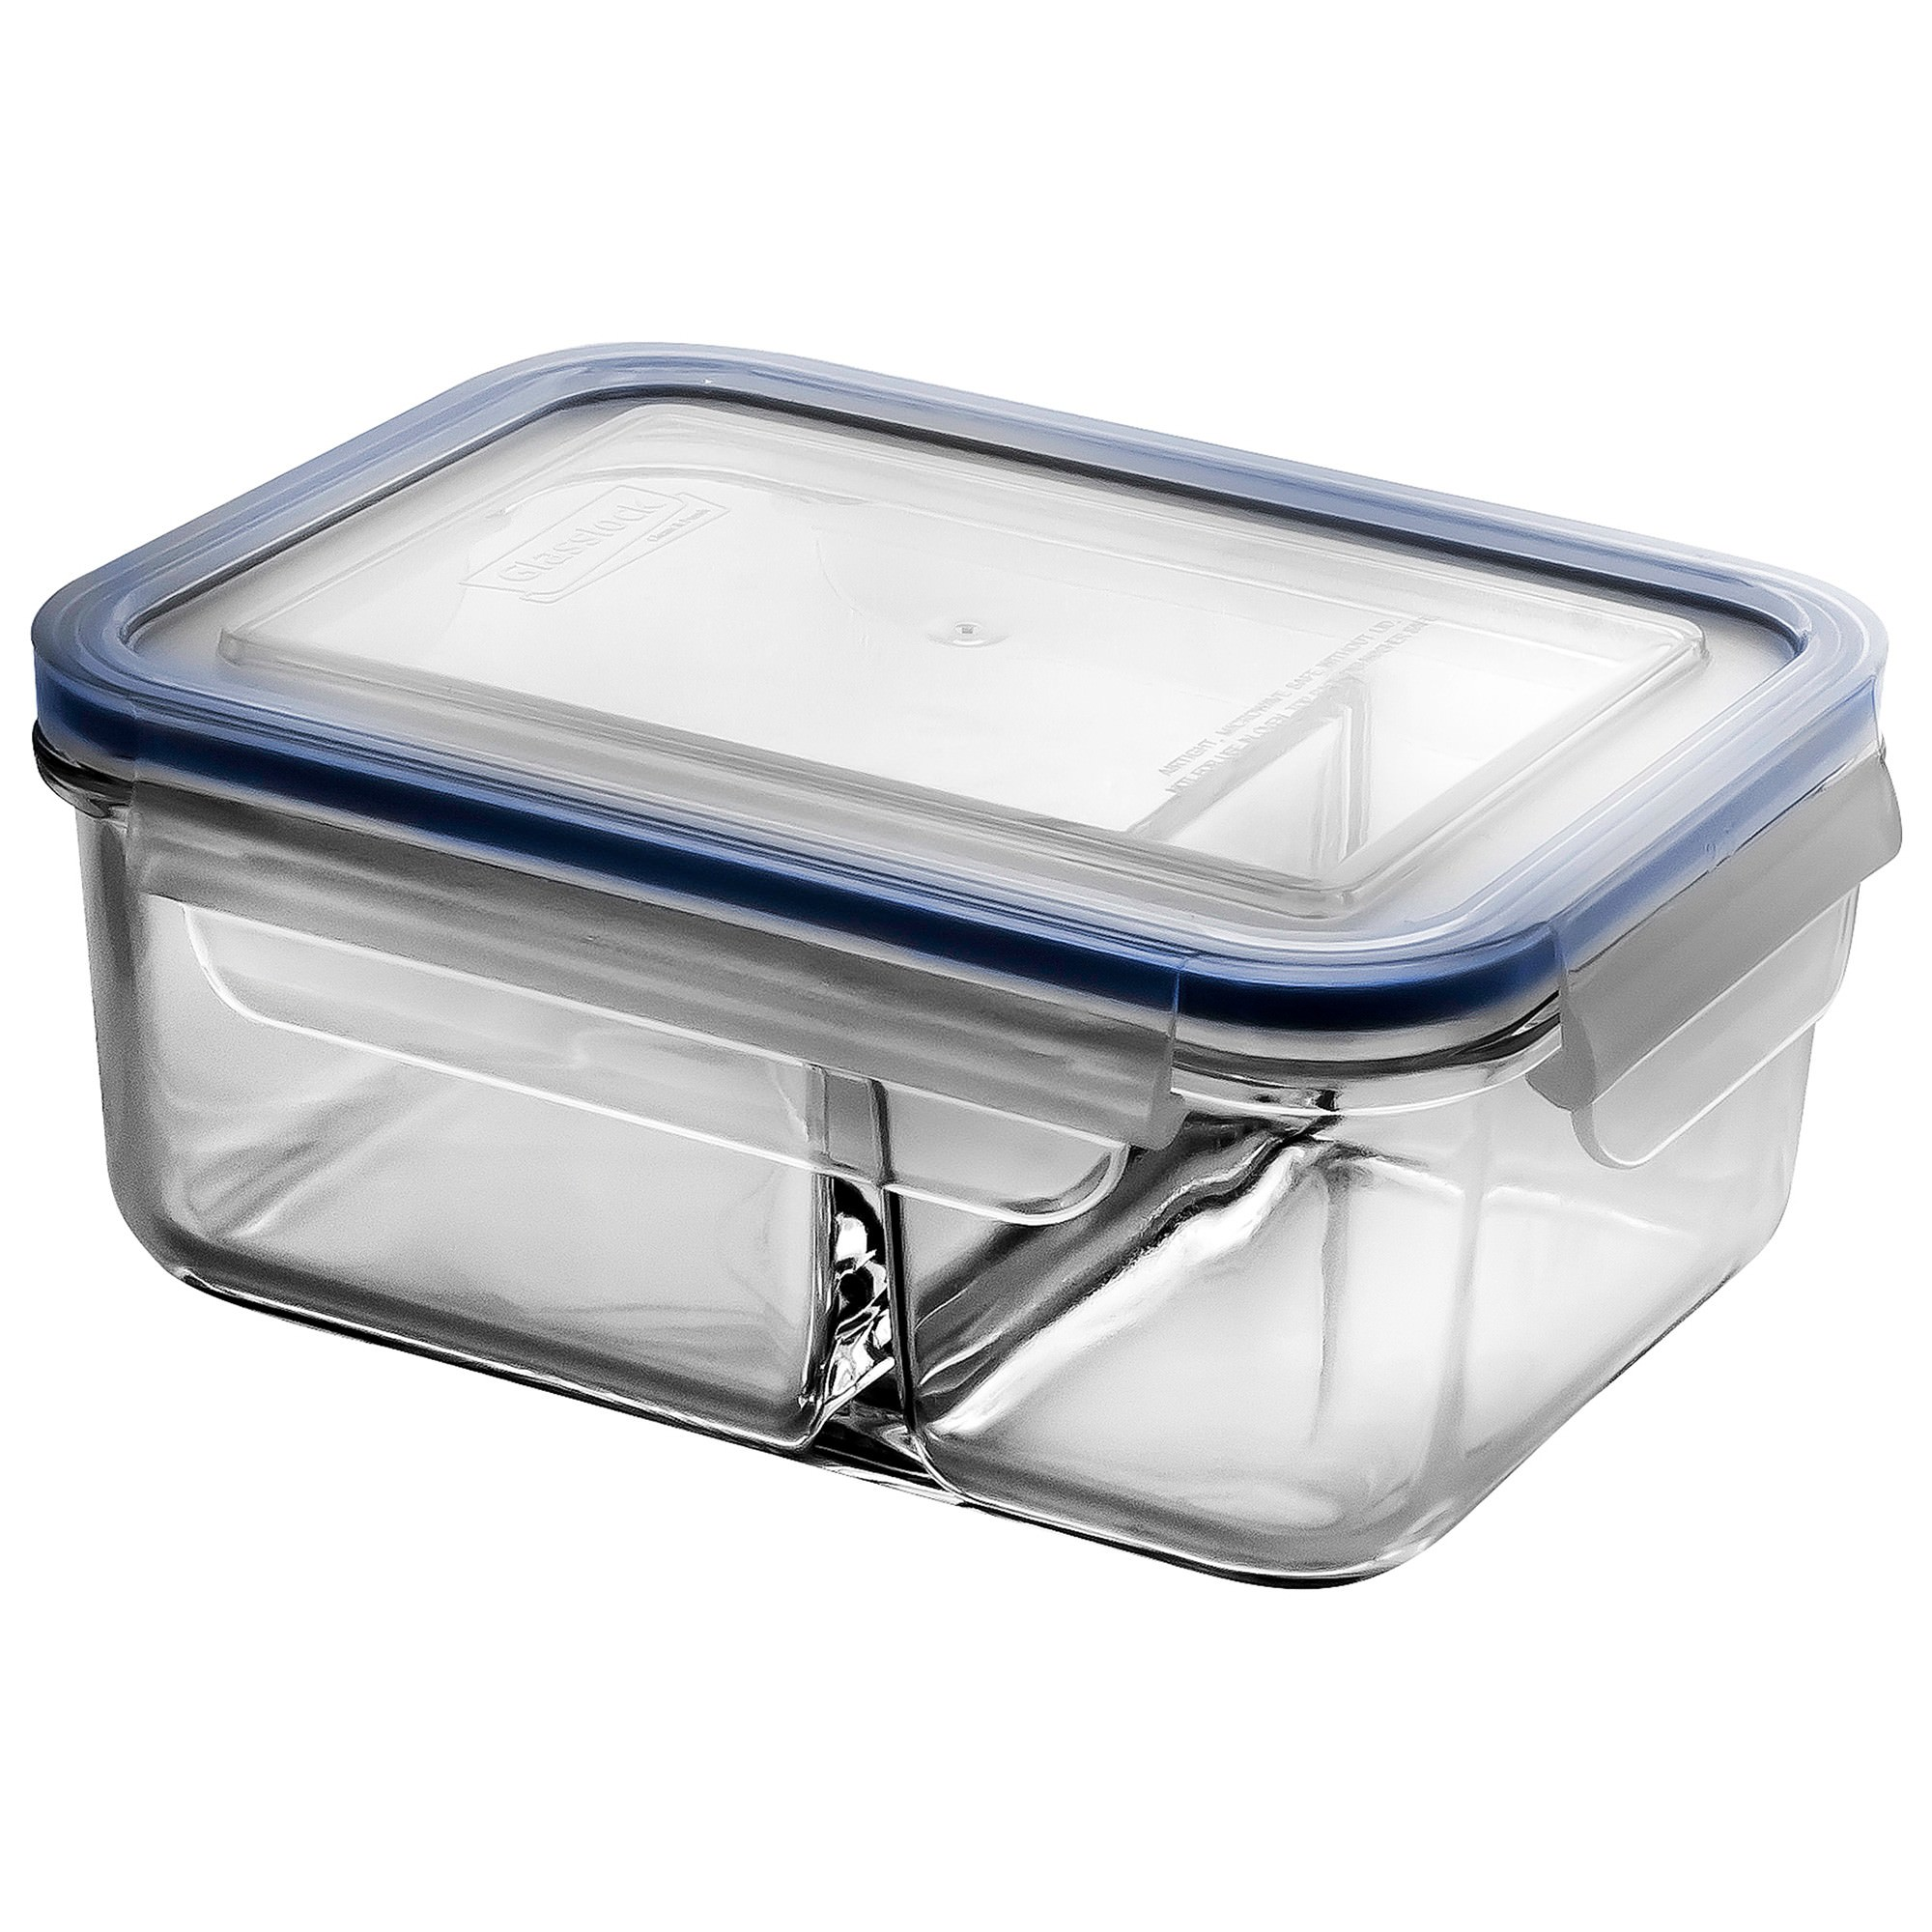 Glasslock Classic DUO Tempered Glass Rectangle Container, 1000ml